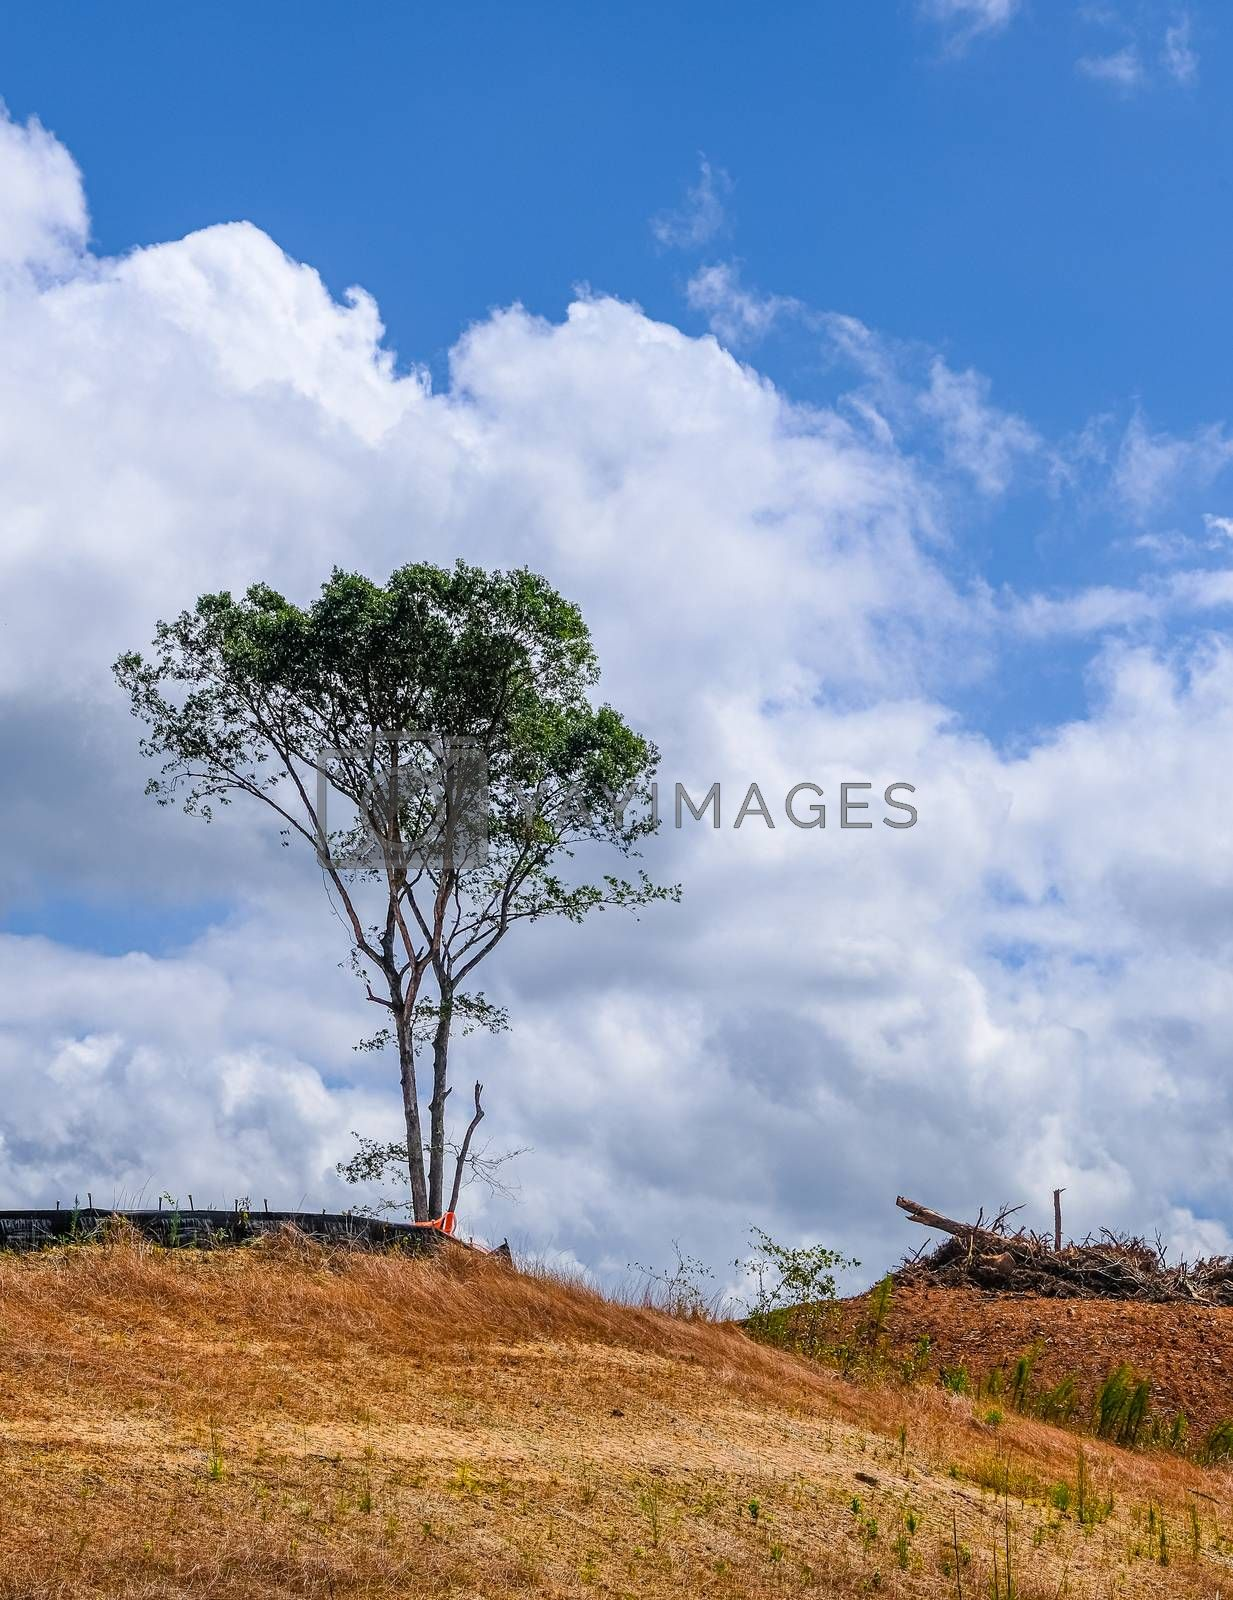 Lone Tree on a Construction Site on a Bare Stripped Dirt Hill